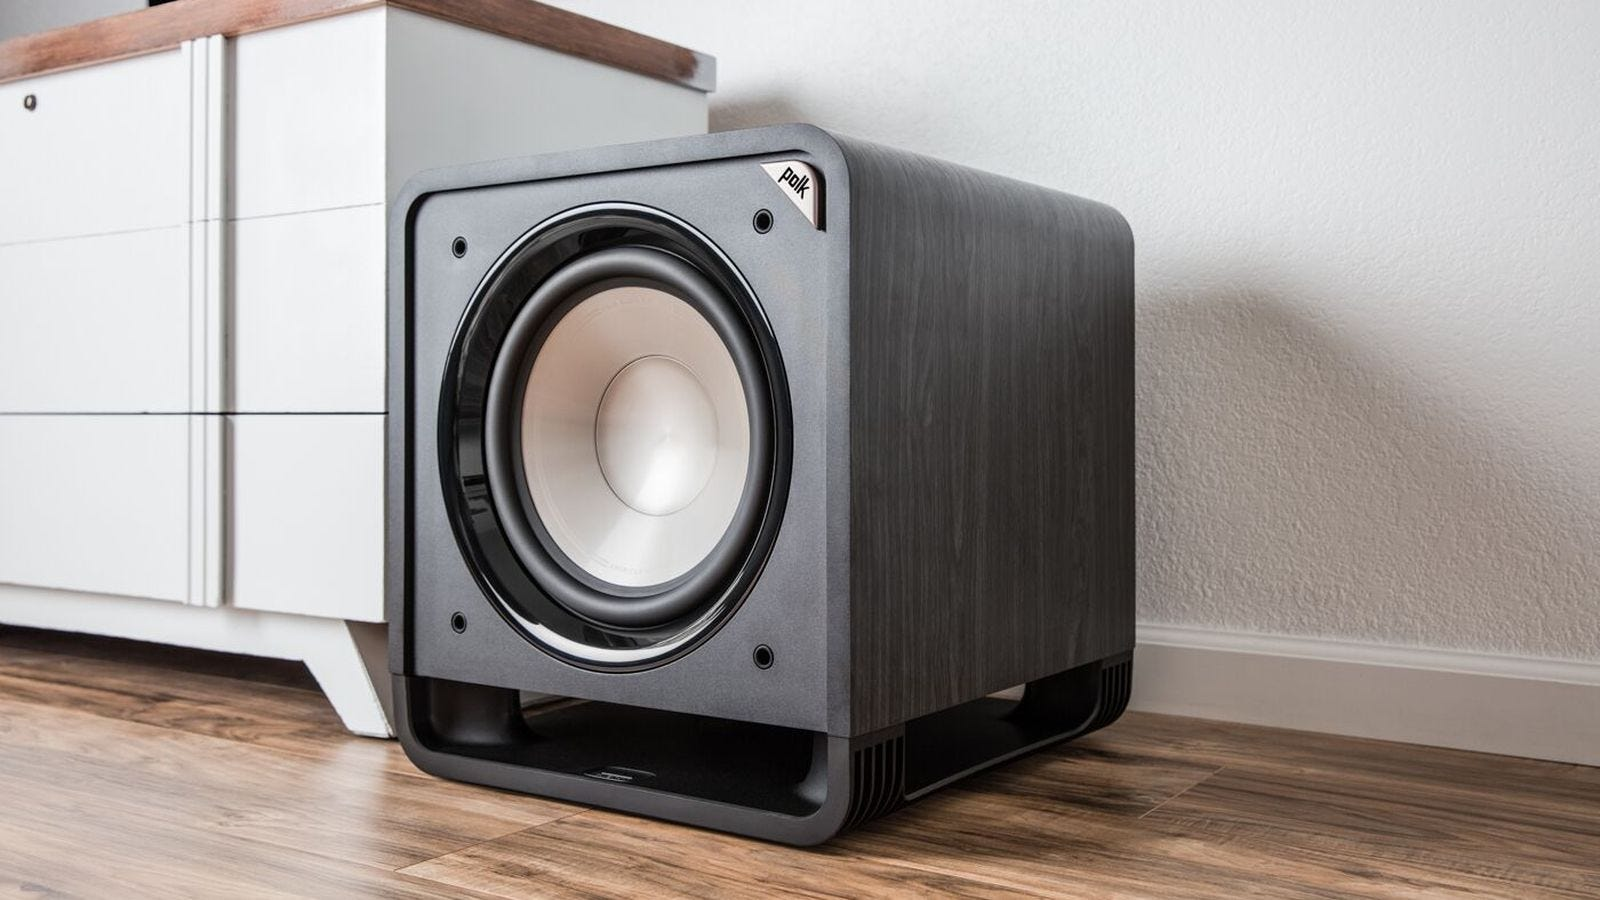 polk hs12 sub-woofer in living space